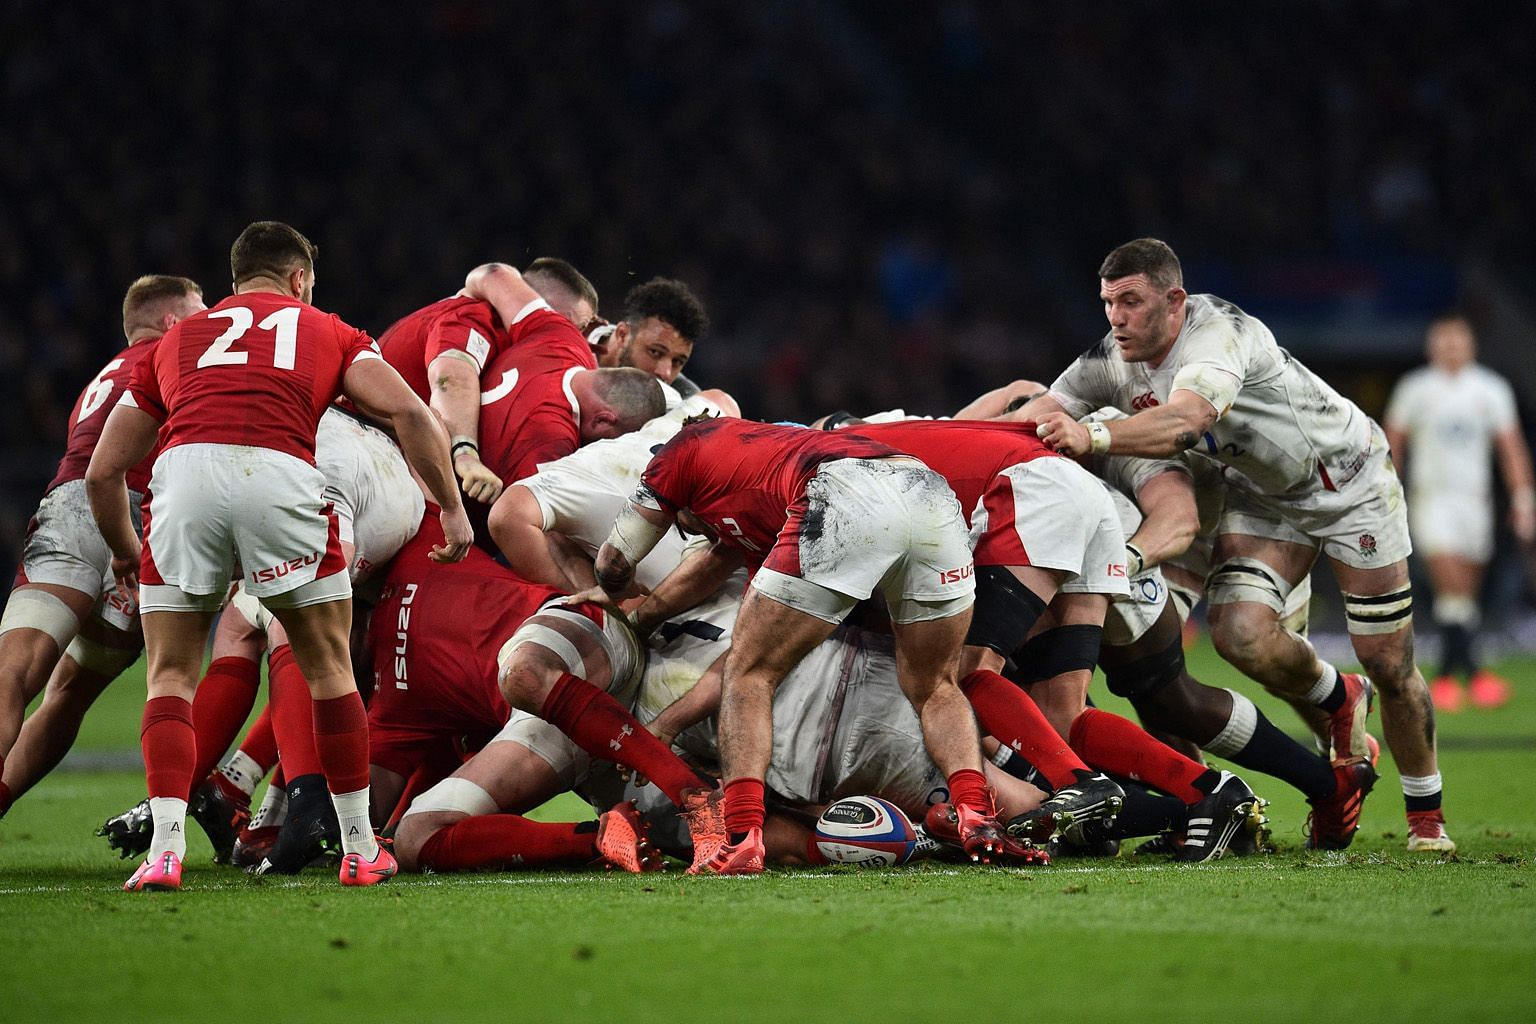 The English and Welsh teams leaving very little distance between them in a scrum during the Six Nations in March.